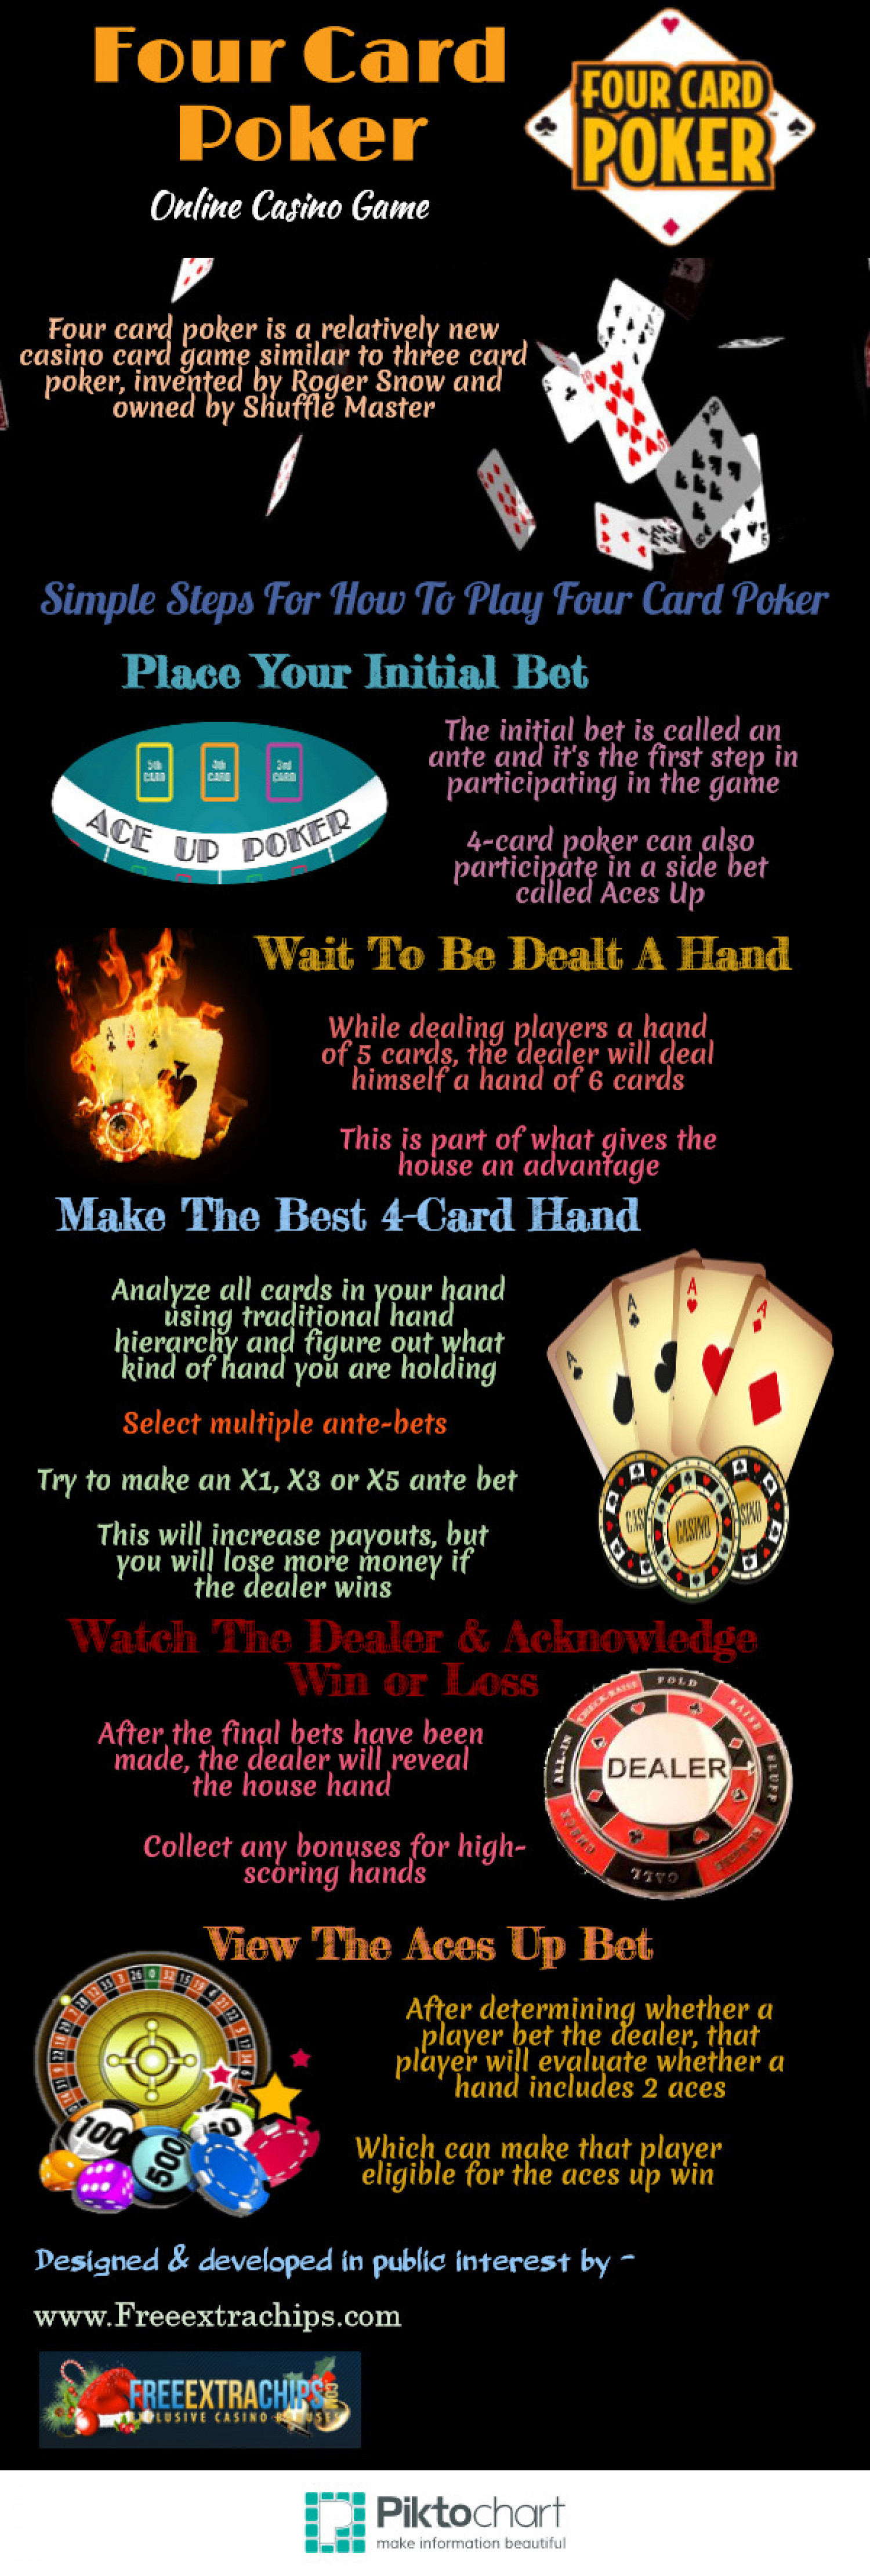 Four Card Poker Infographic